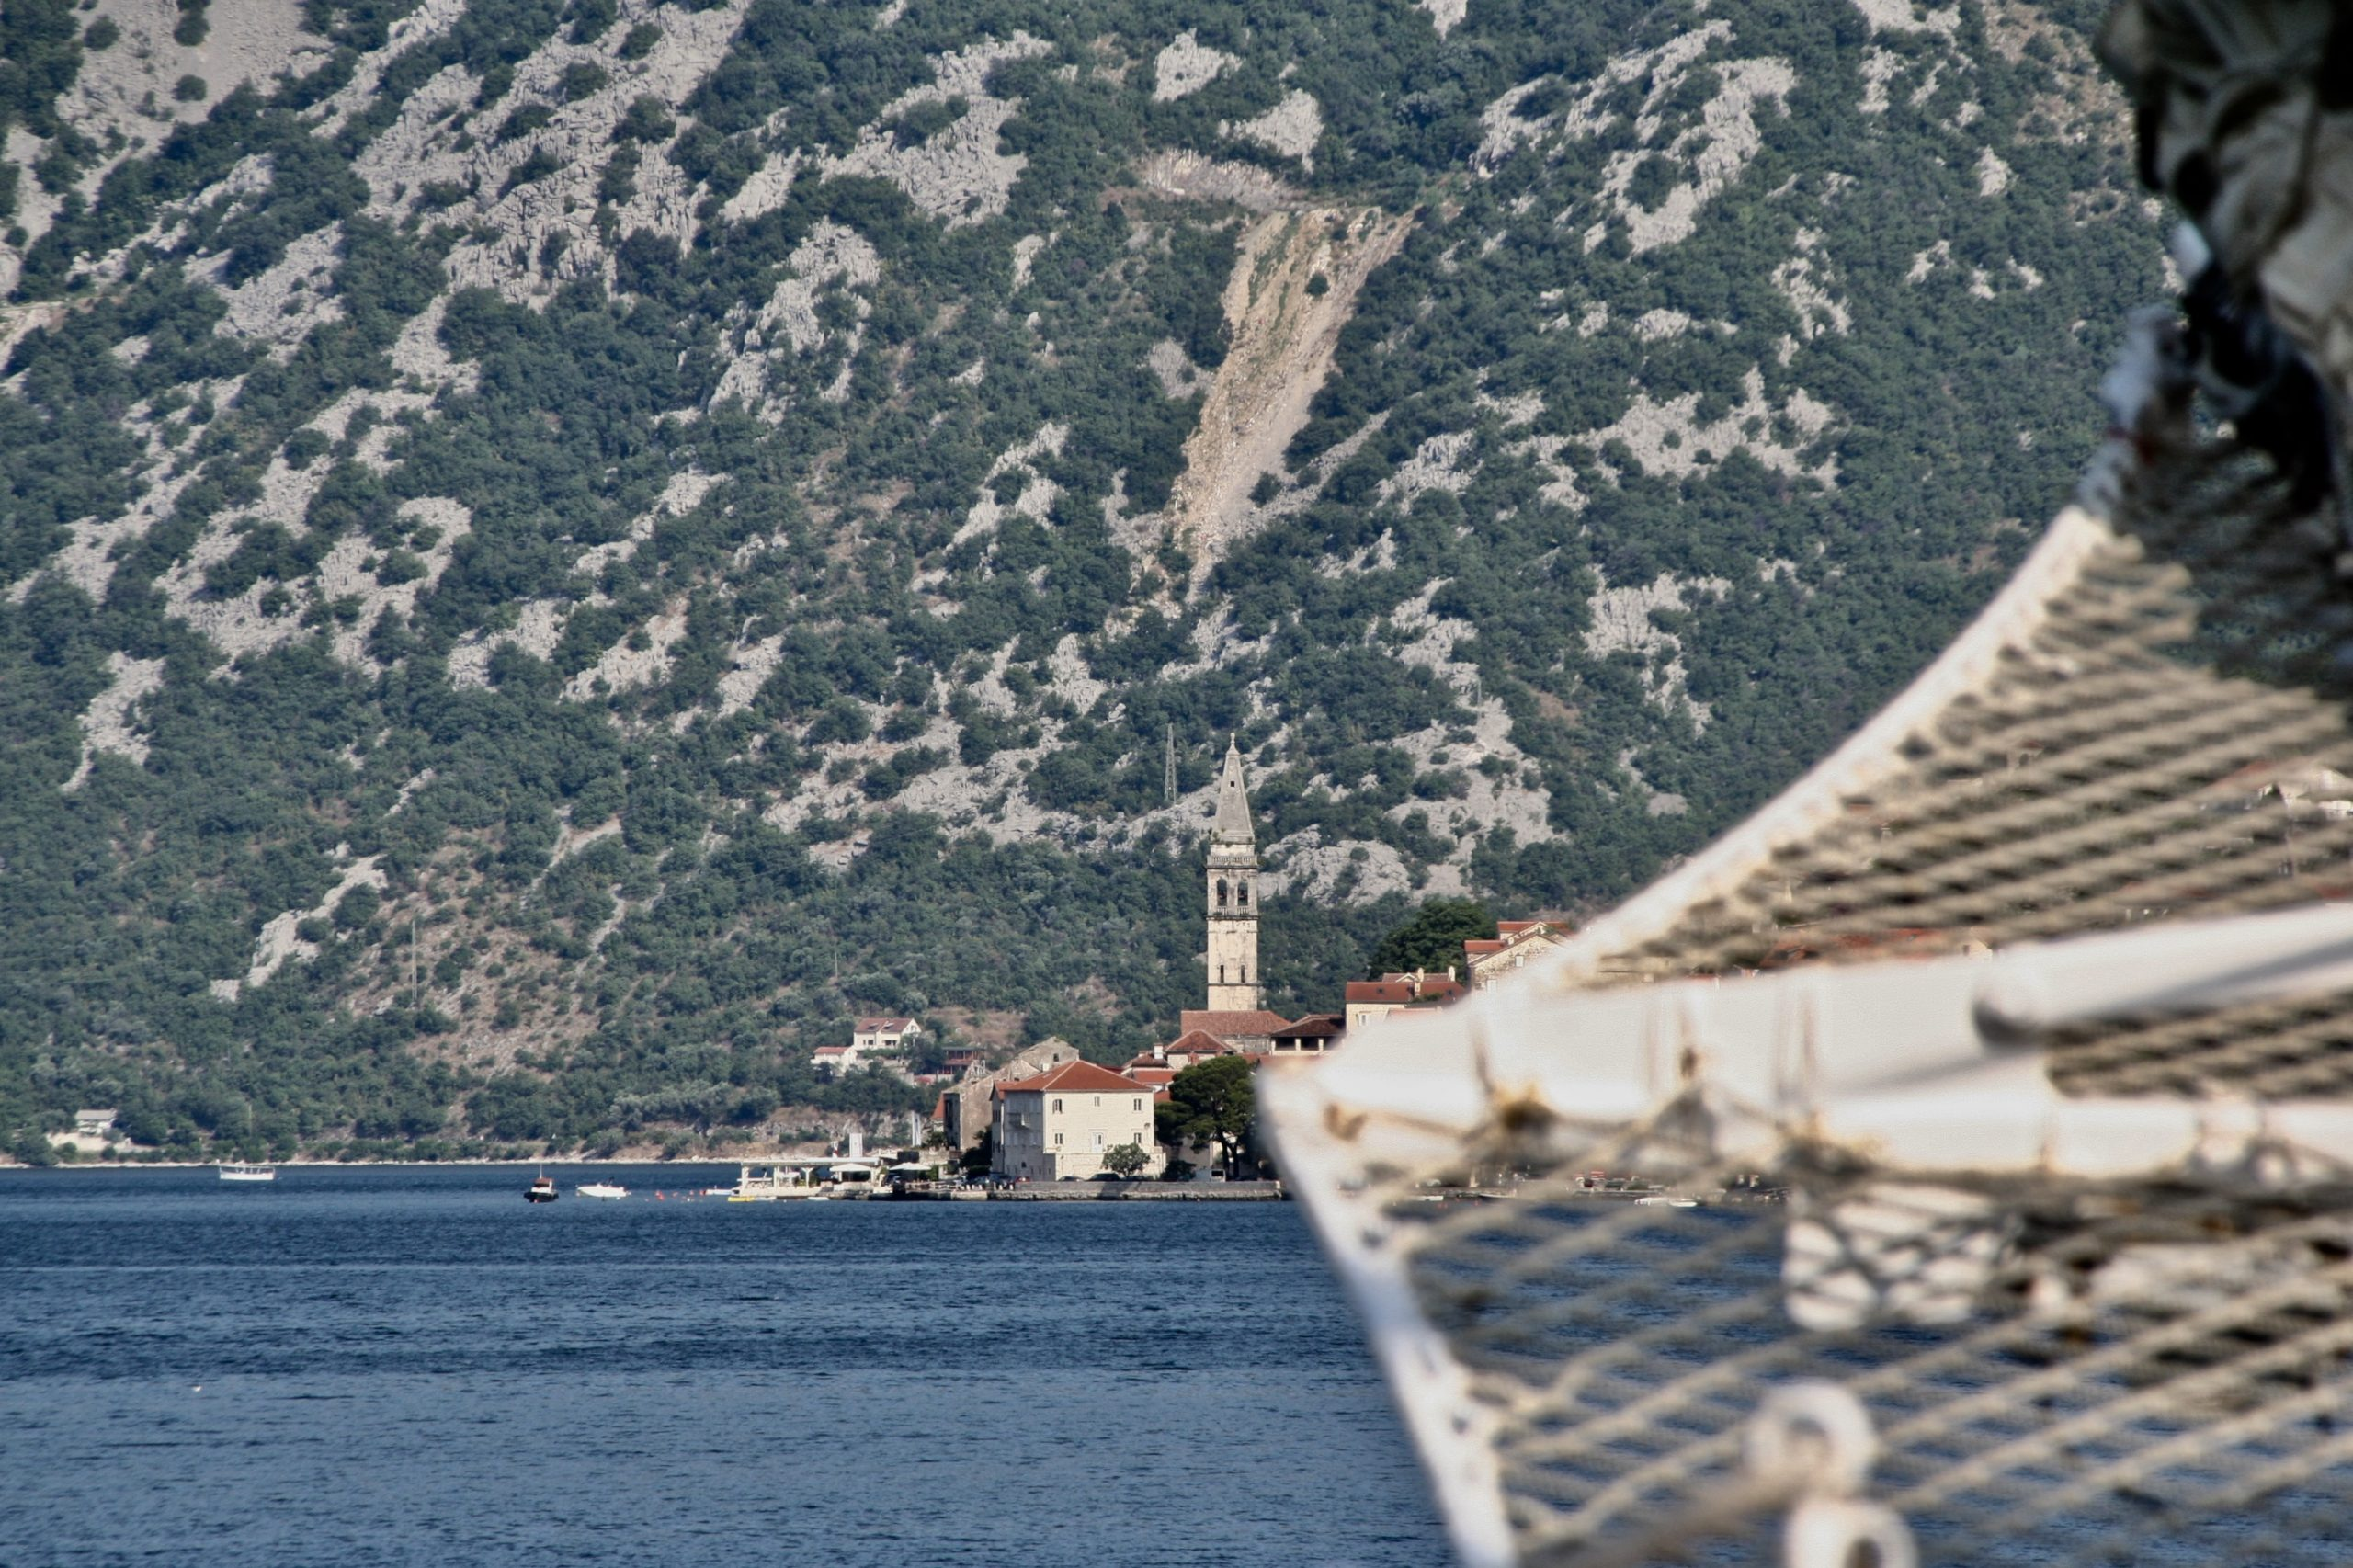 Sea-Cloud-Bucht-von-Kotor-ME-14_7_19-©-Roman-Goly-4-scaled.jpeg